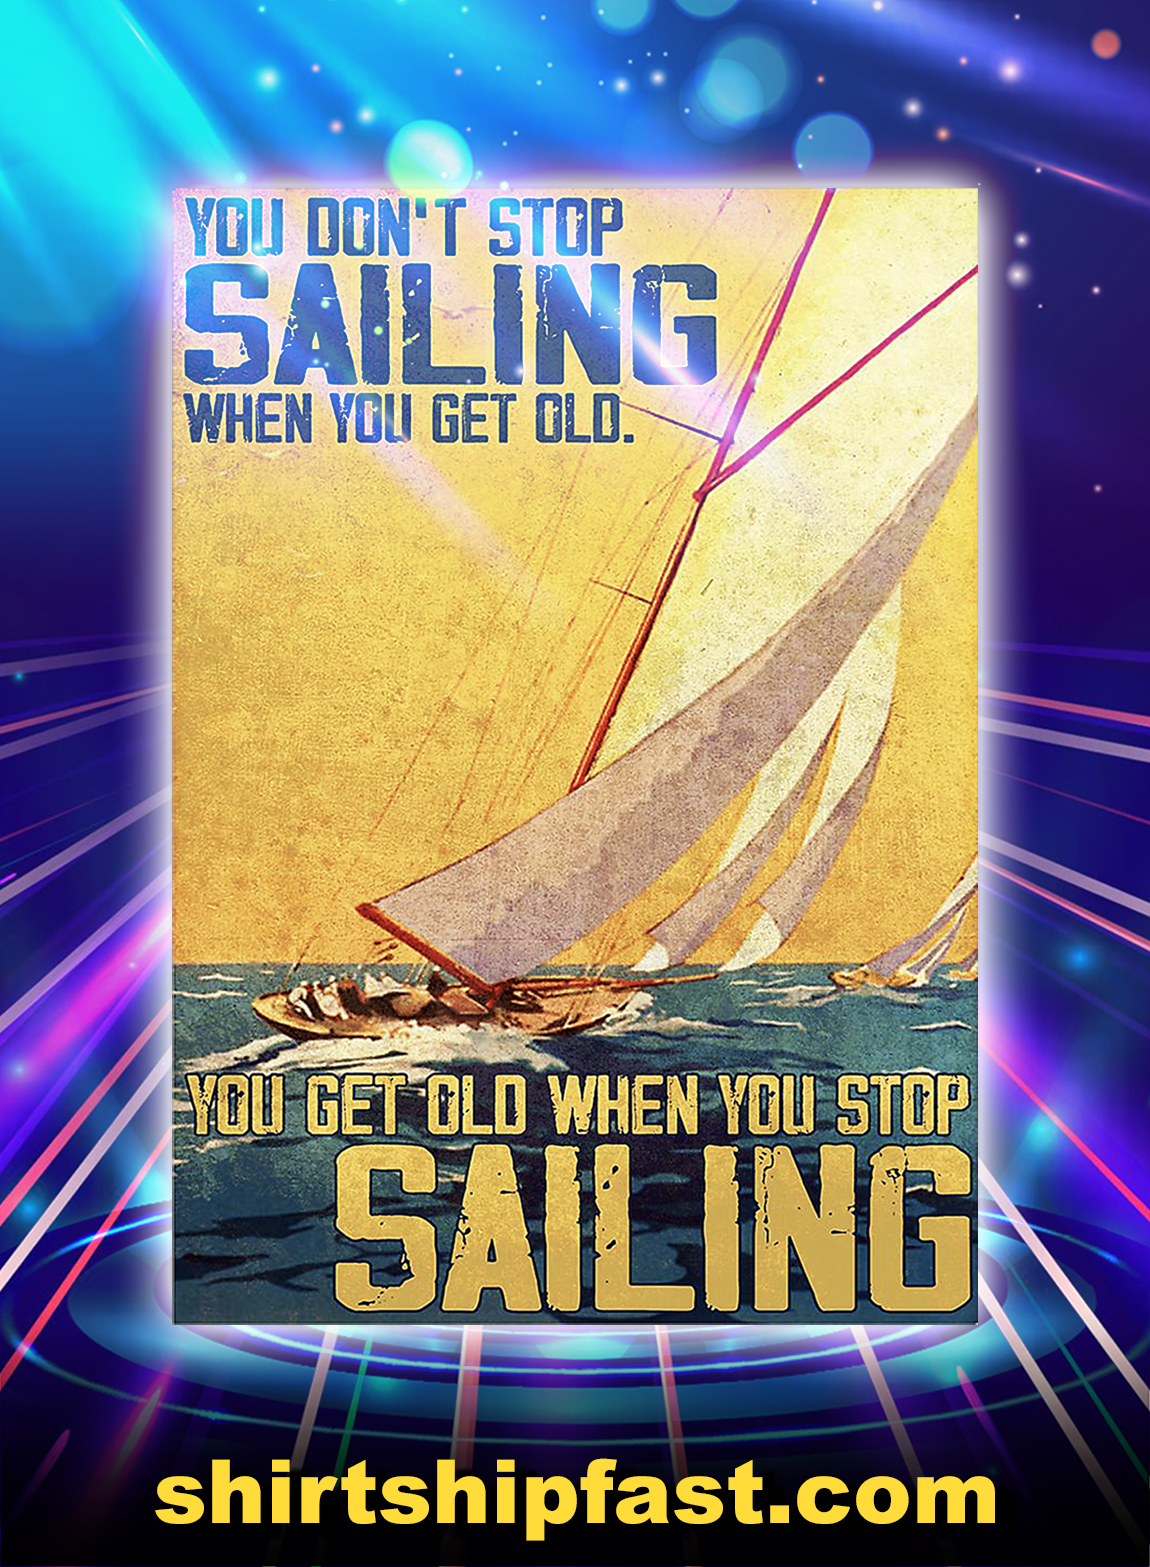 You don't stop sailing when you get old poster - A2